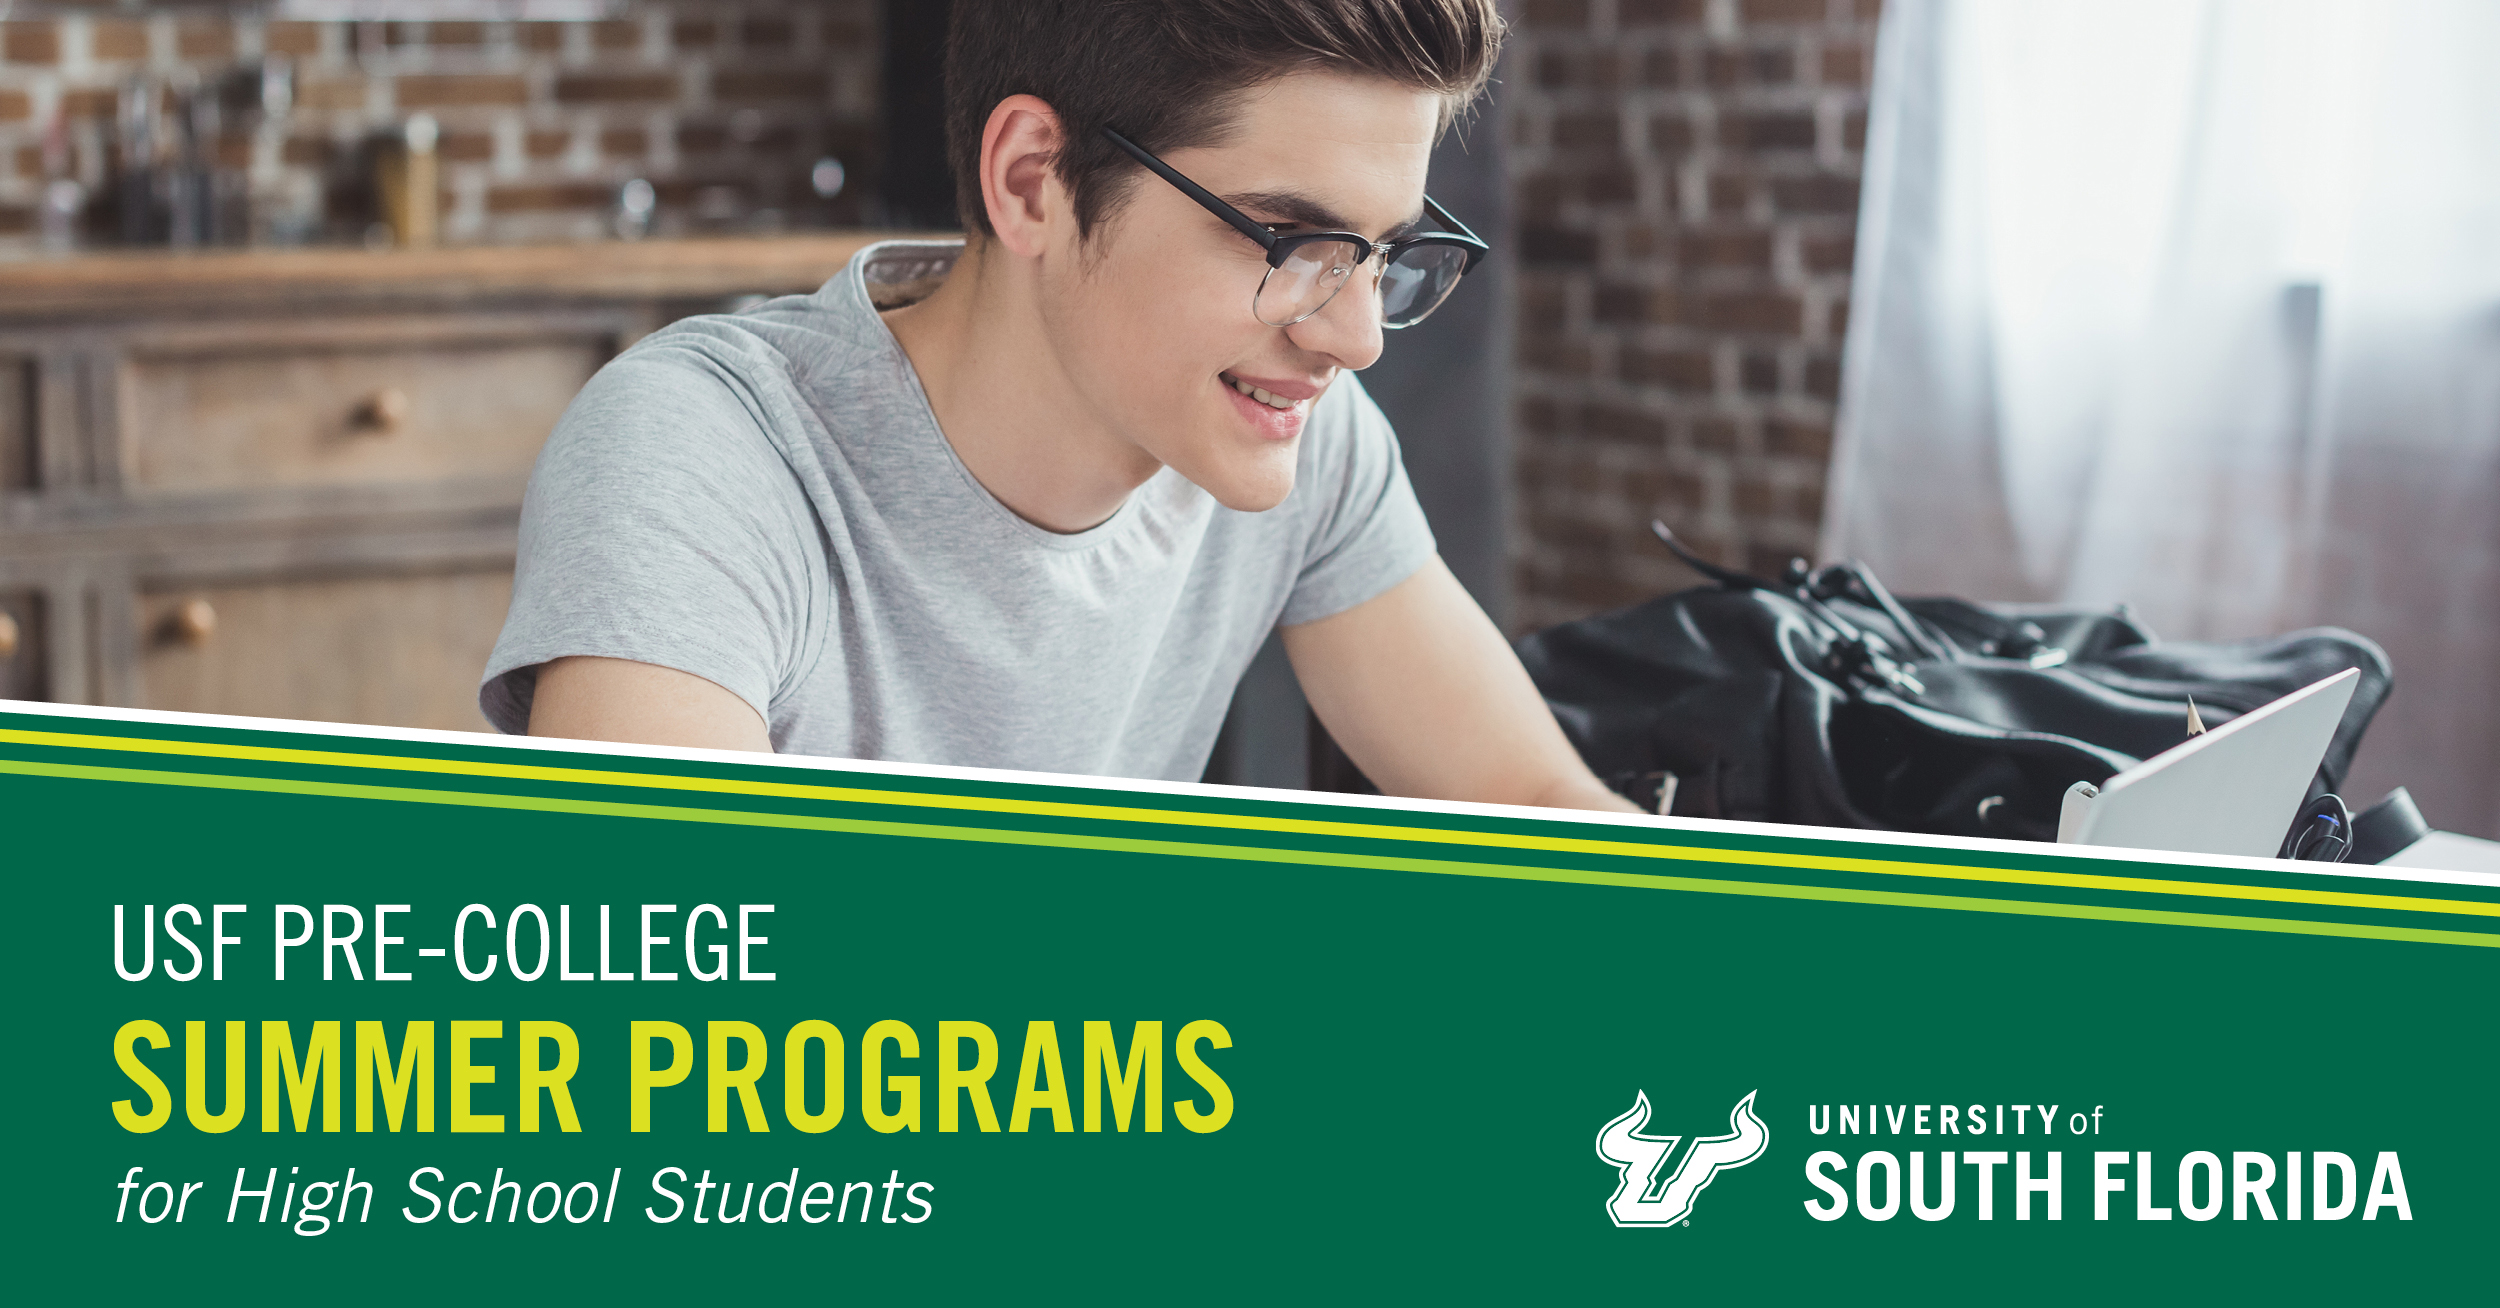 Summer Program - Filmmaking and Digital Media | University of South Florida Pre-College: Summer Programs for High School Students